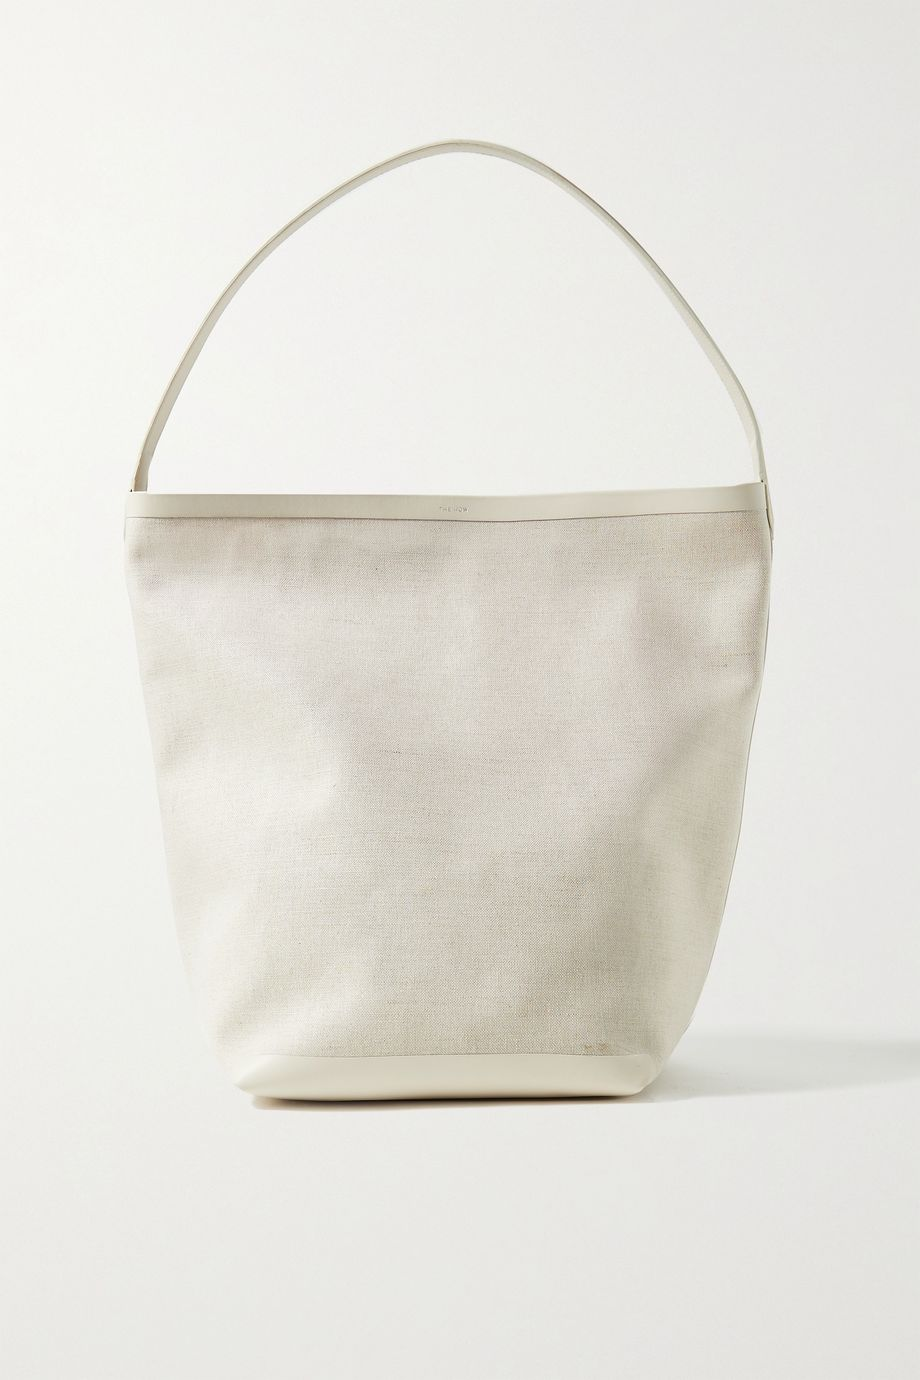 THE ROW N/S Park leather-trimmed canvas tote